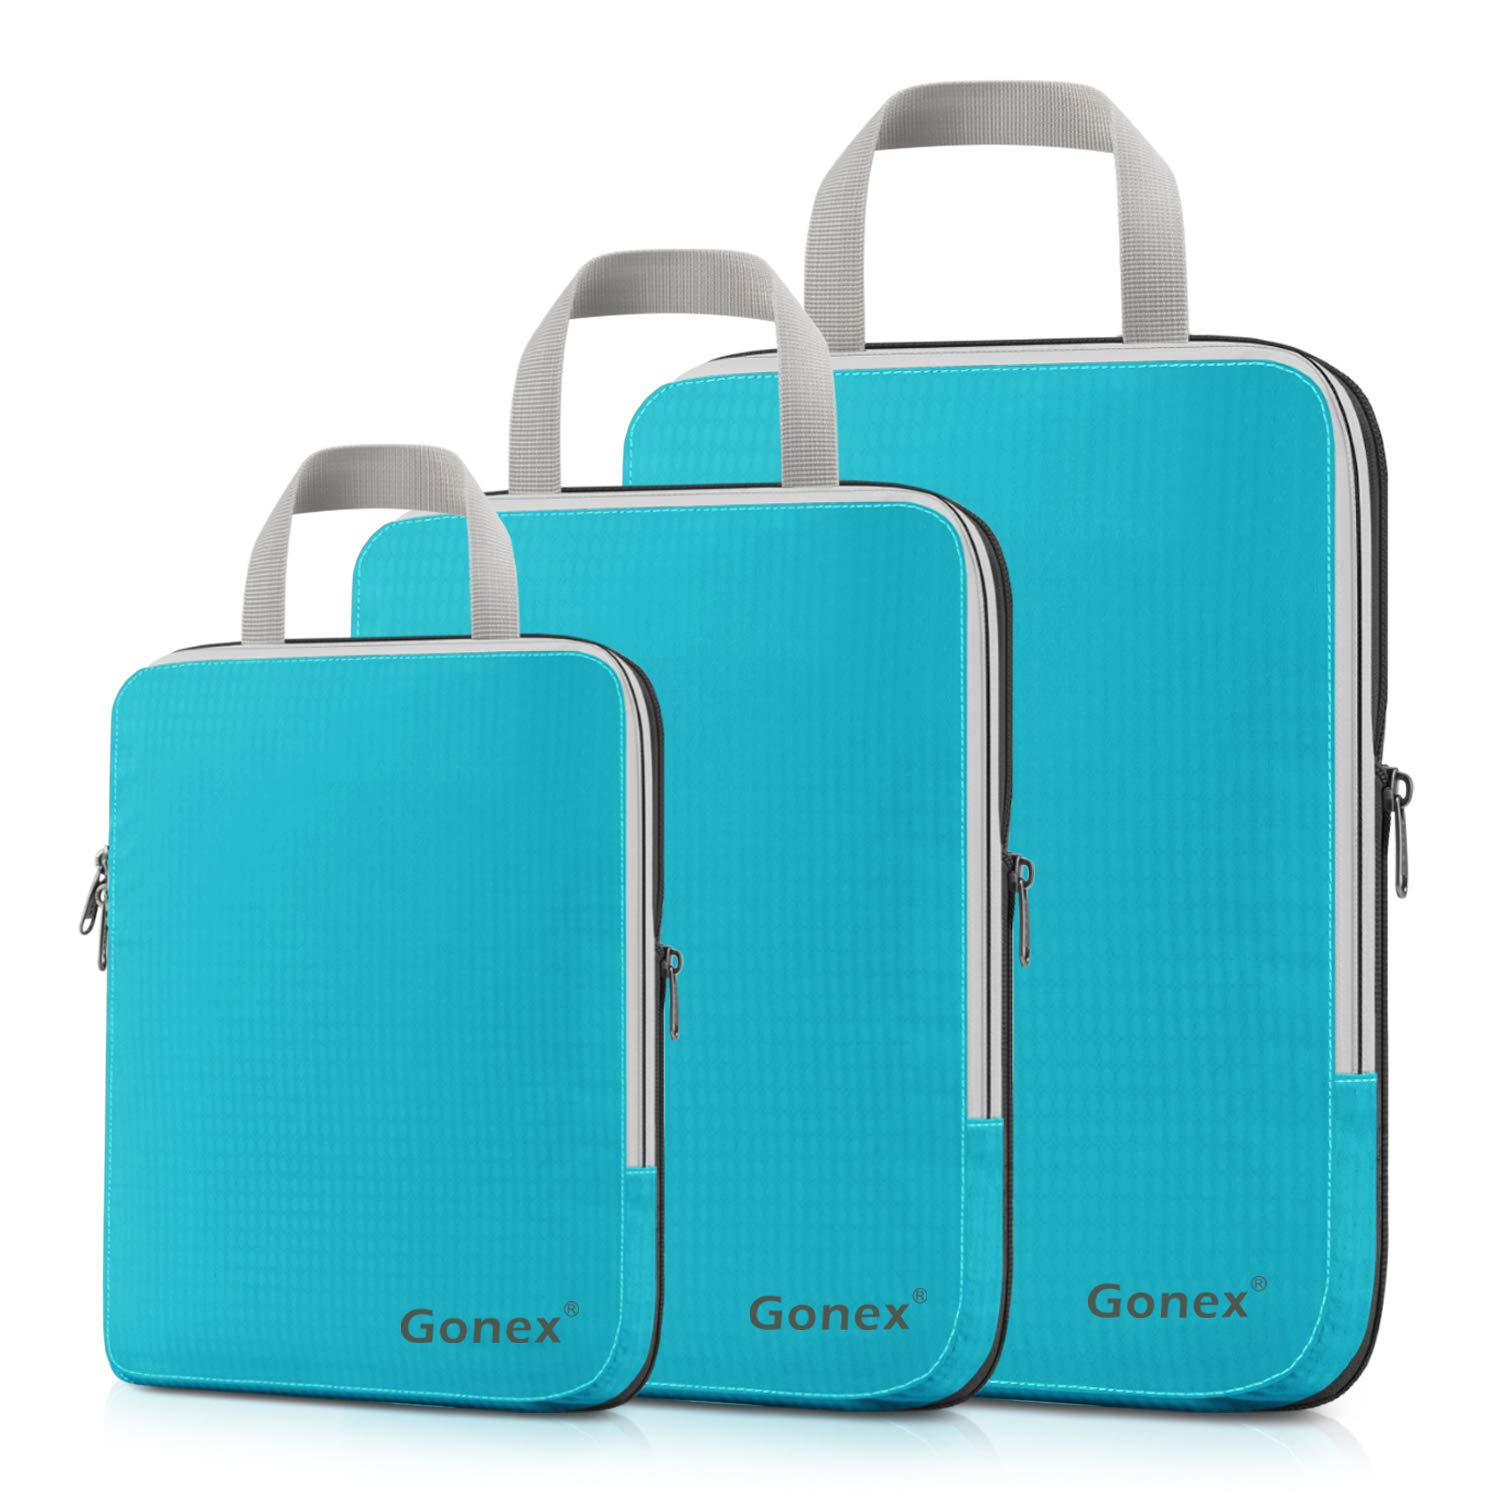 Compression Packing Cubes, Gonex Travel Organizers Upgraded 3PCS L+M+S(Blue) by Gonex